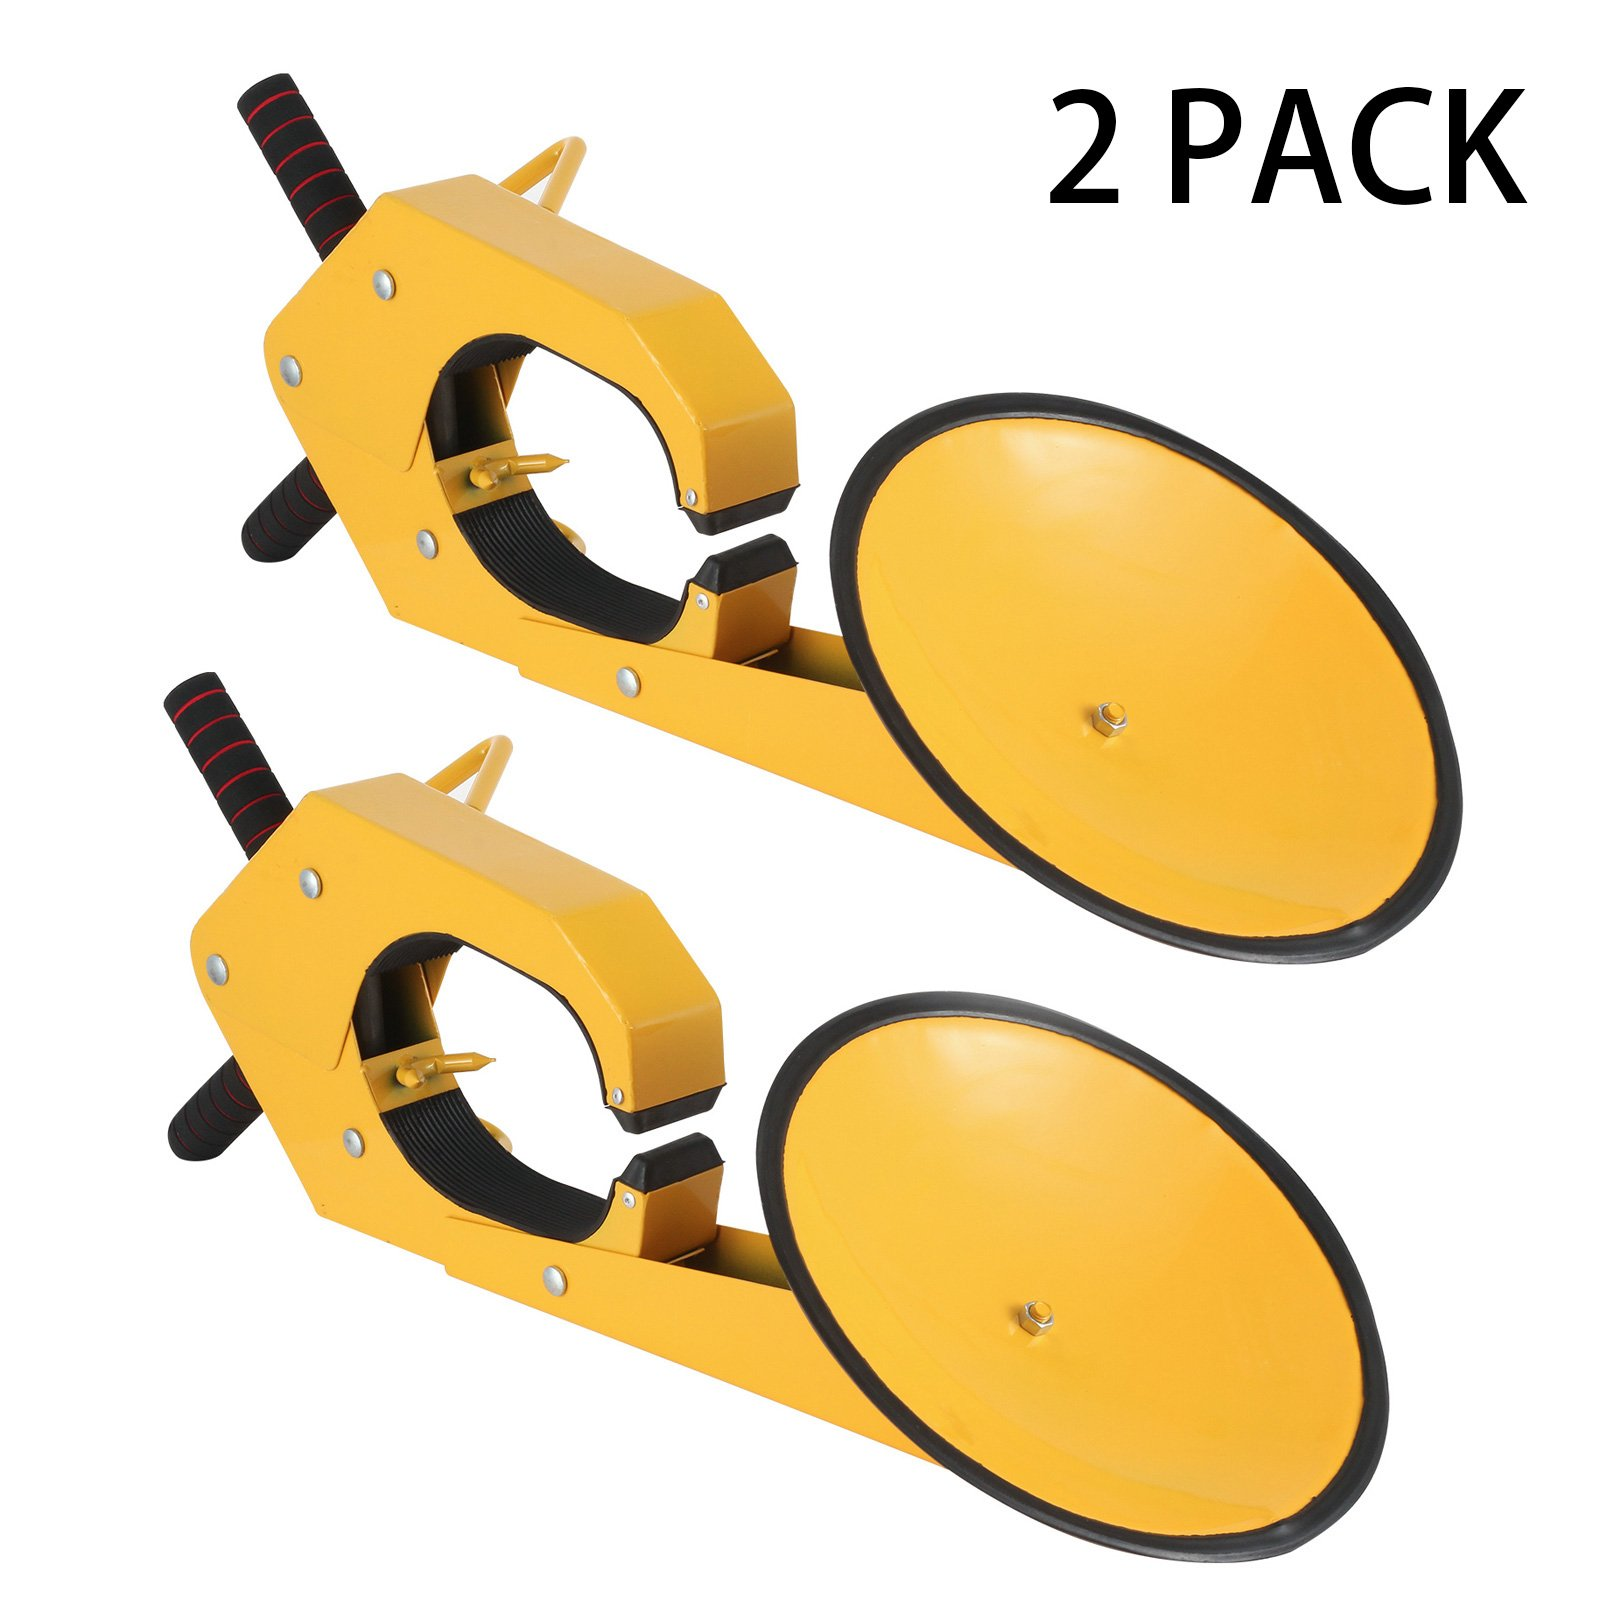 Mophorn 2pcs Wheel Lock Clamp Boot Tire Claw Heavy-duty Anti Theft Parking Boot Car Tire Claw Parking Boot Lock (2 pc) by Mophorn